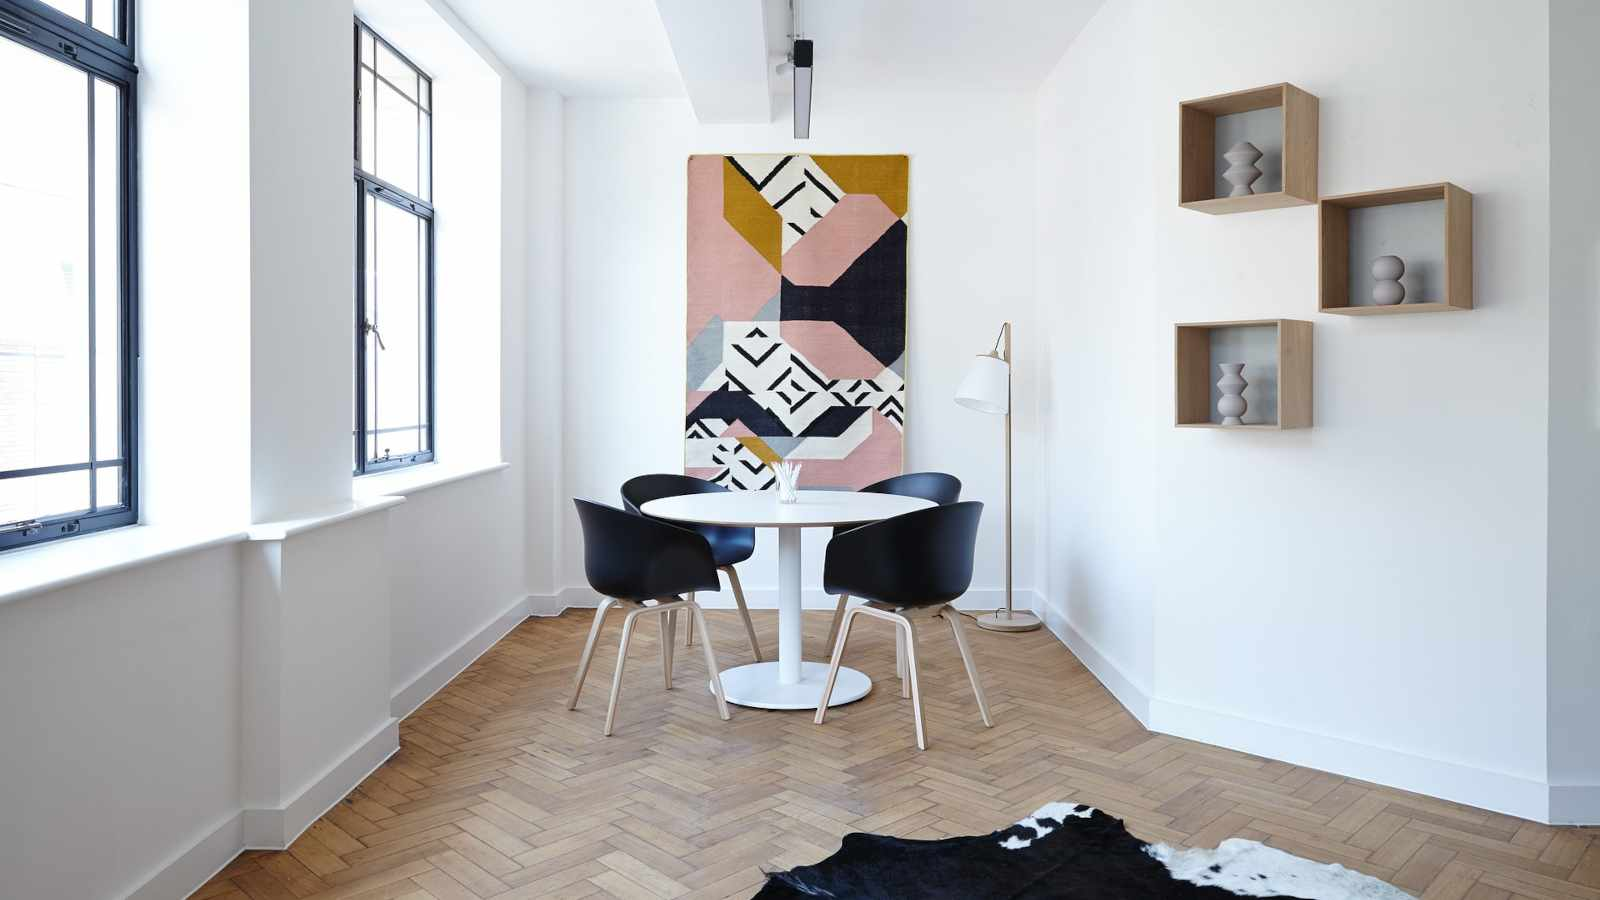 Interior design trends to know in 2021 – and what's on its way out